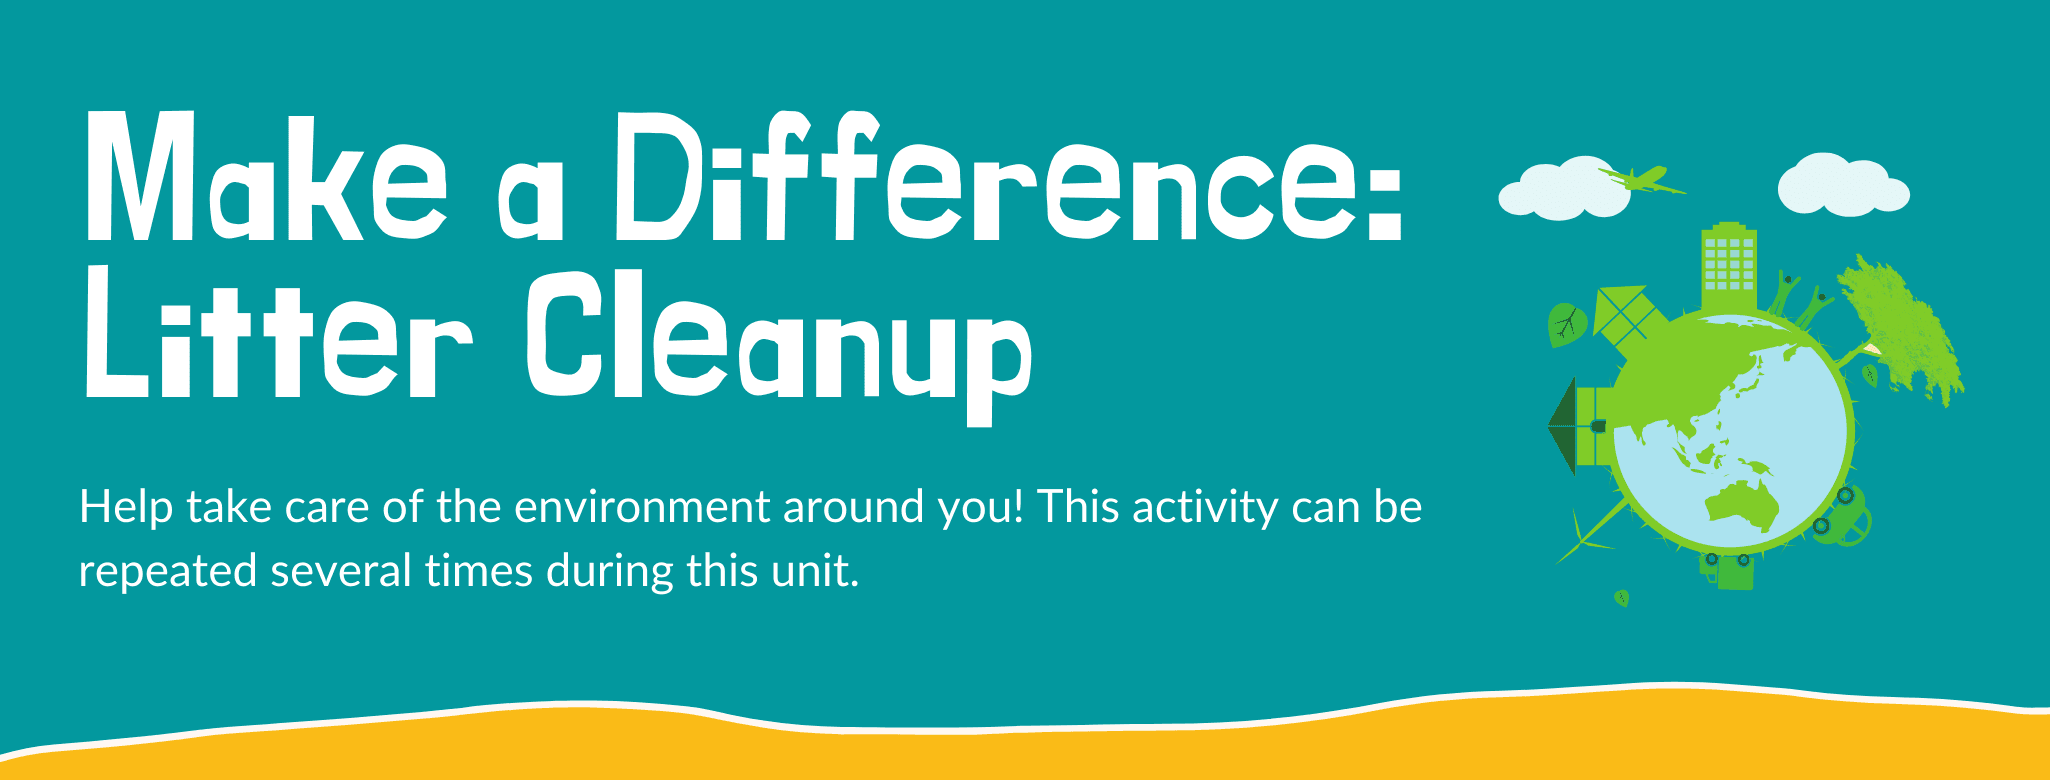 Make a Difference: Litter Cleanup